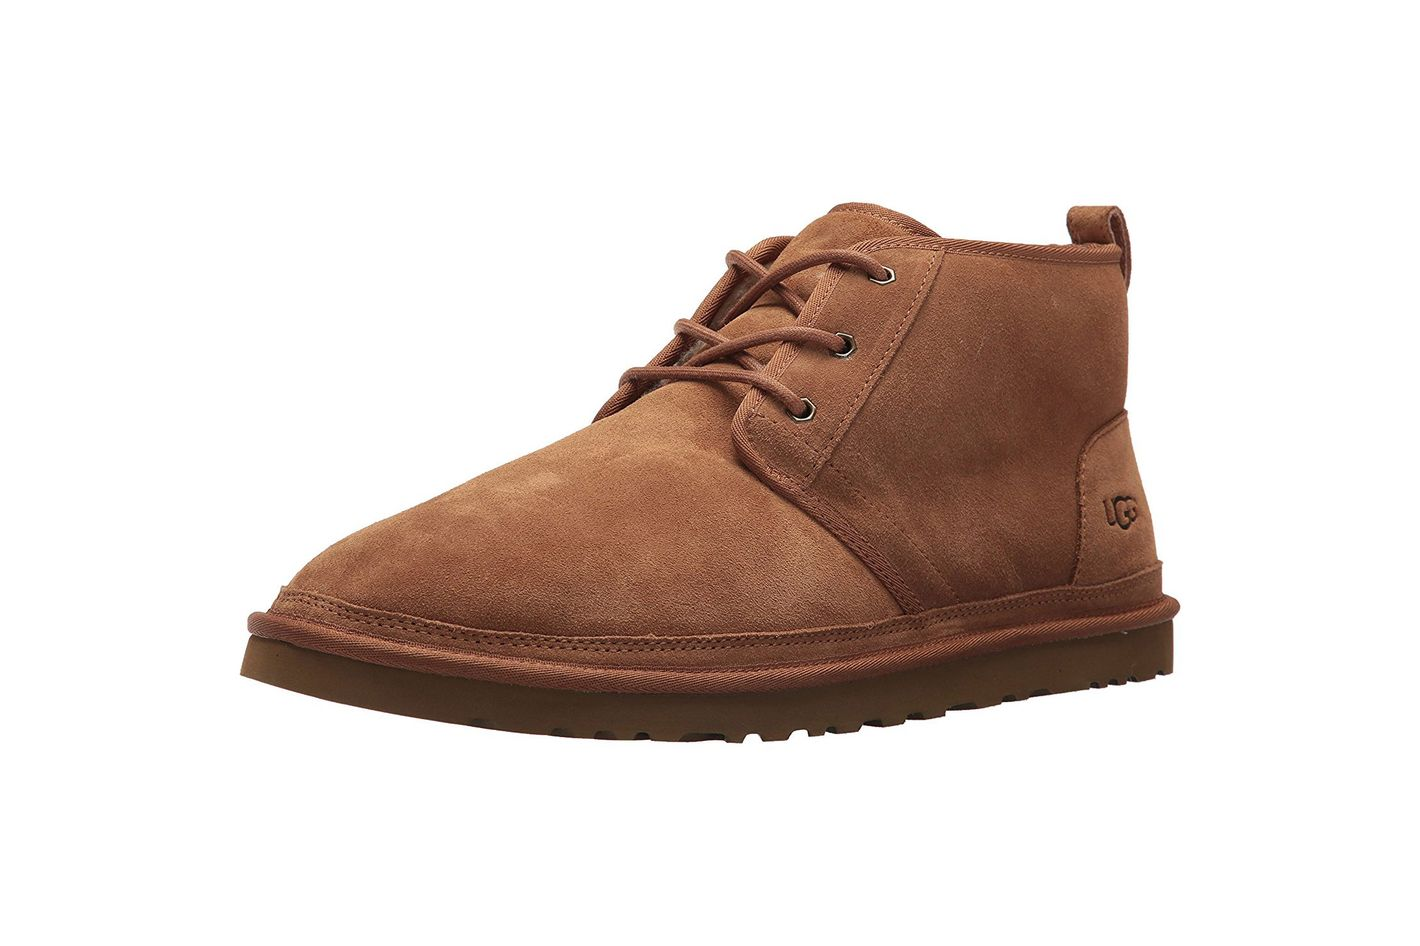 Best Men S Winter Boots On Amazon According To Reviewers